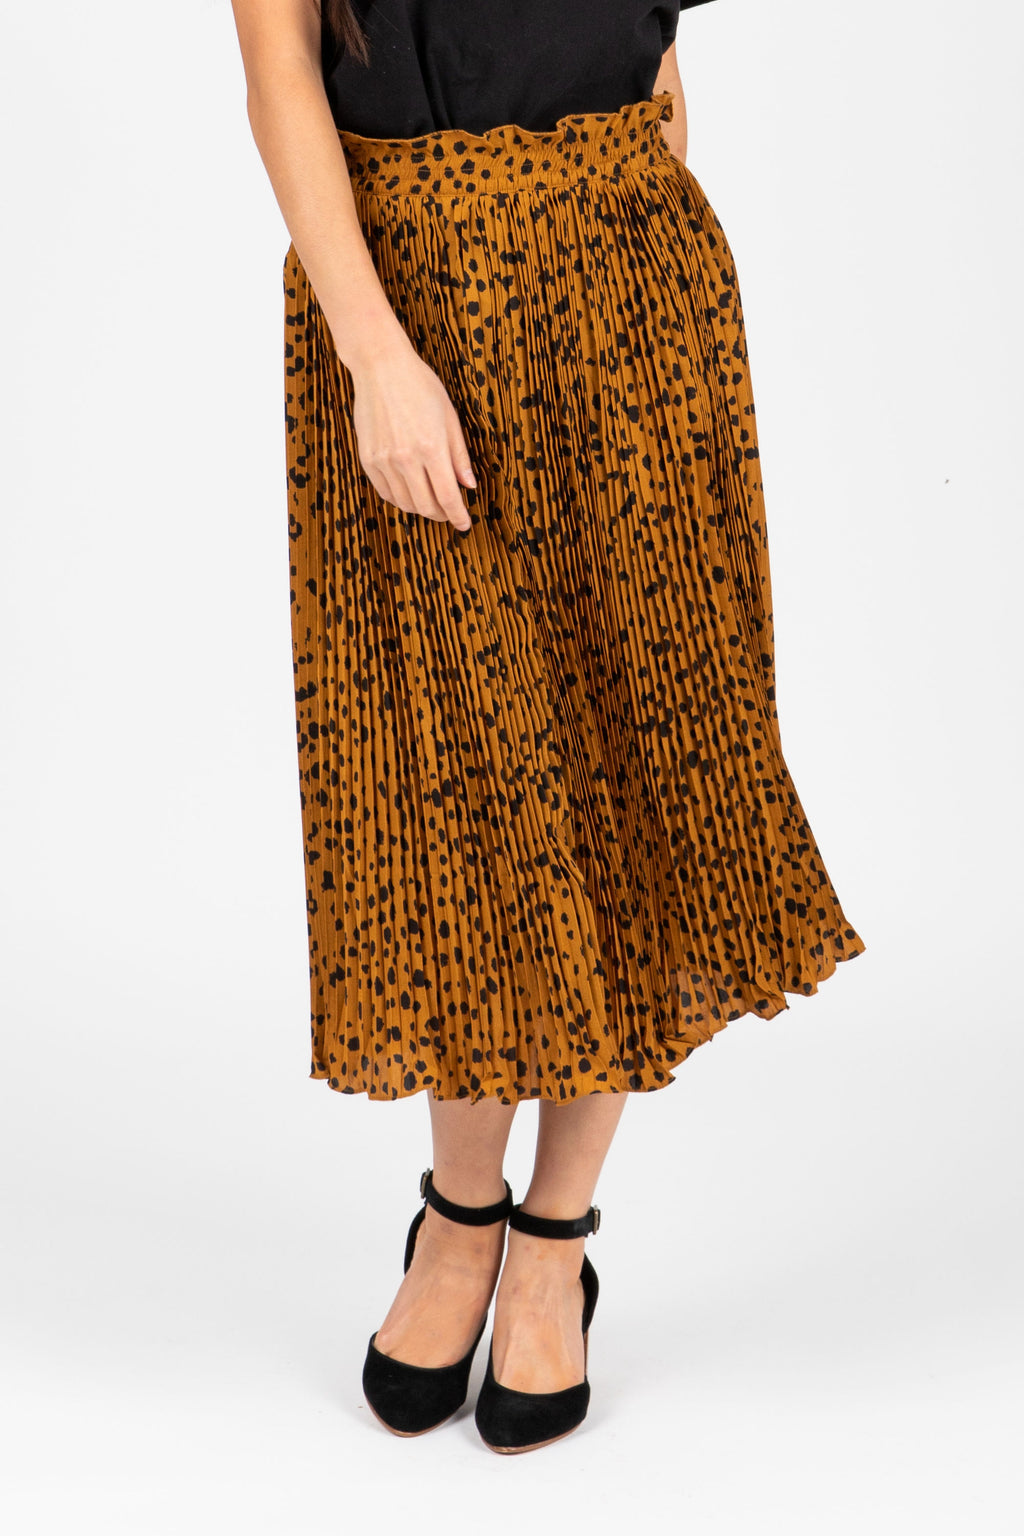 The Naldi Animal Print Smocked Skirt in Camel, studio shoot; front view